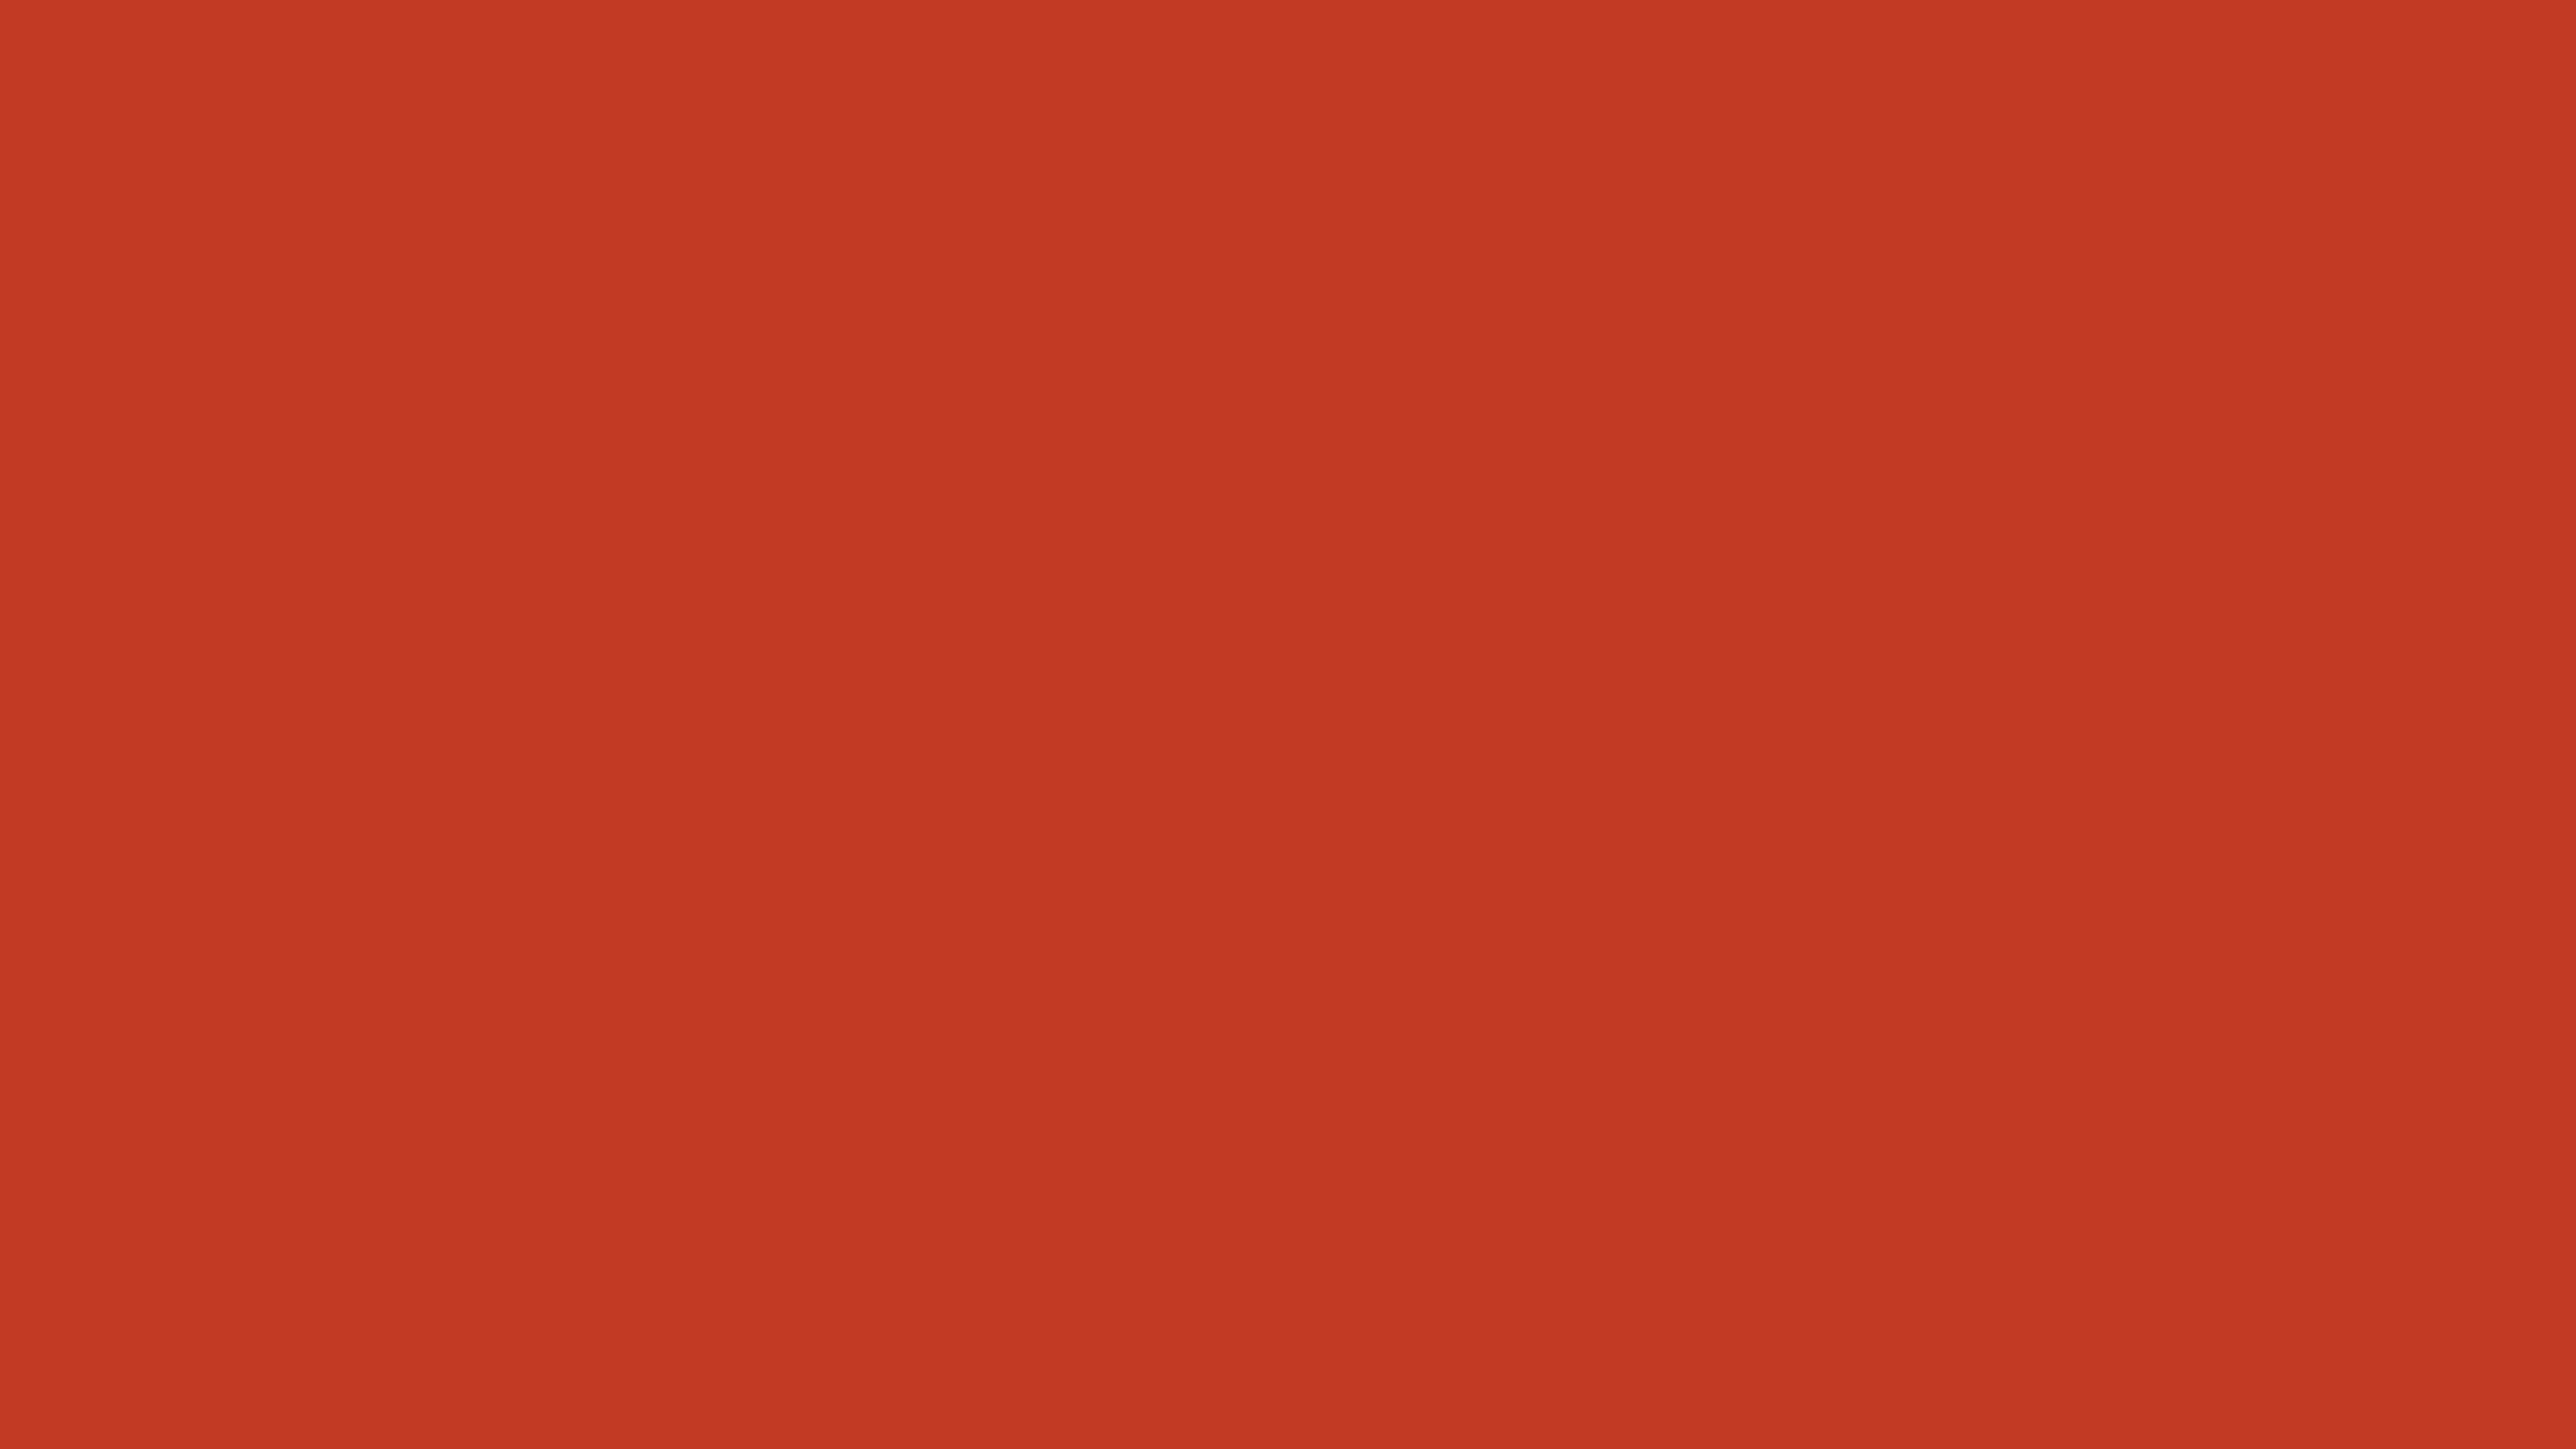 3840x2160 Dark Pastel Red Solid Color Background